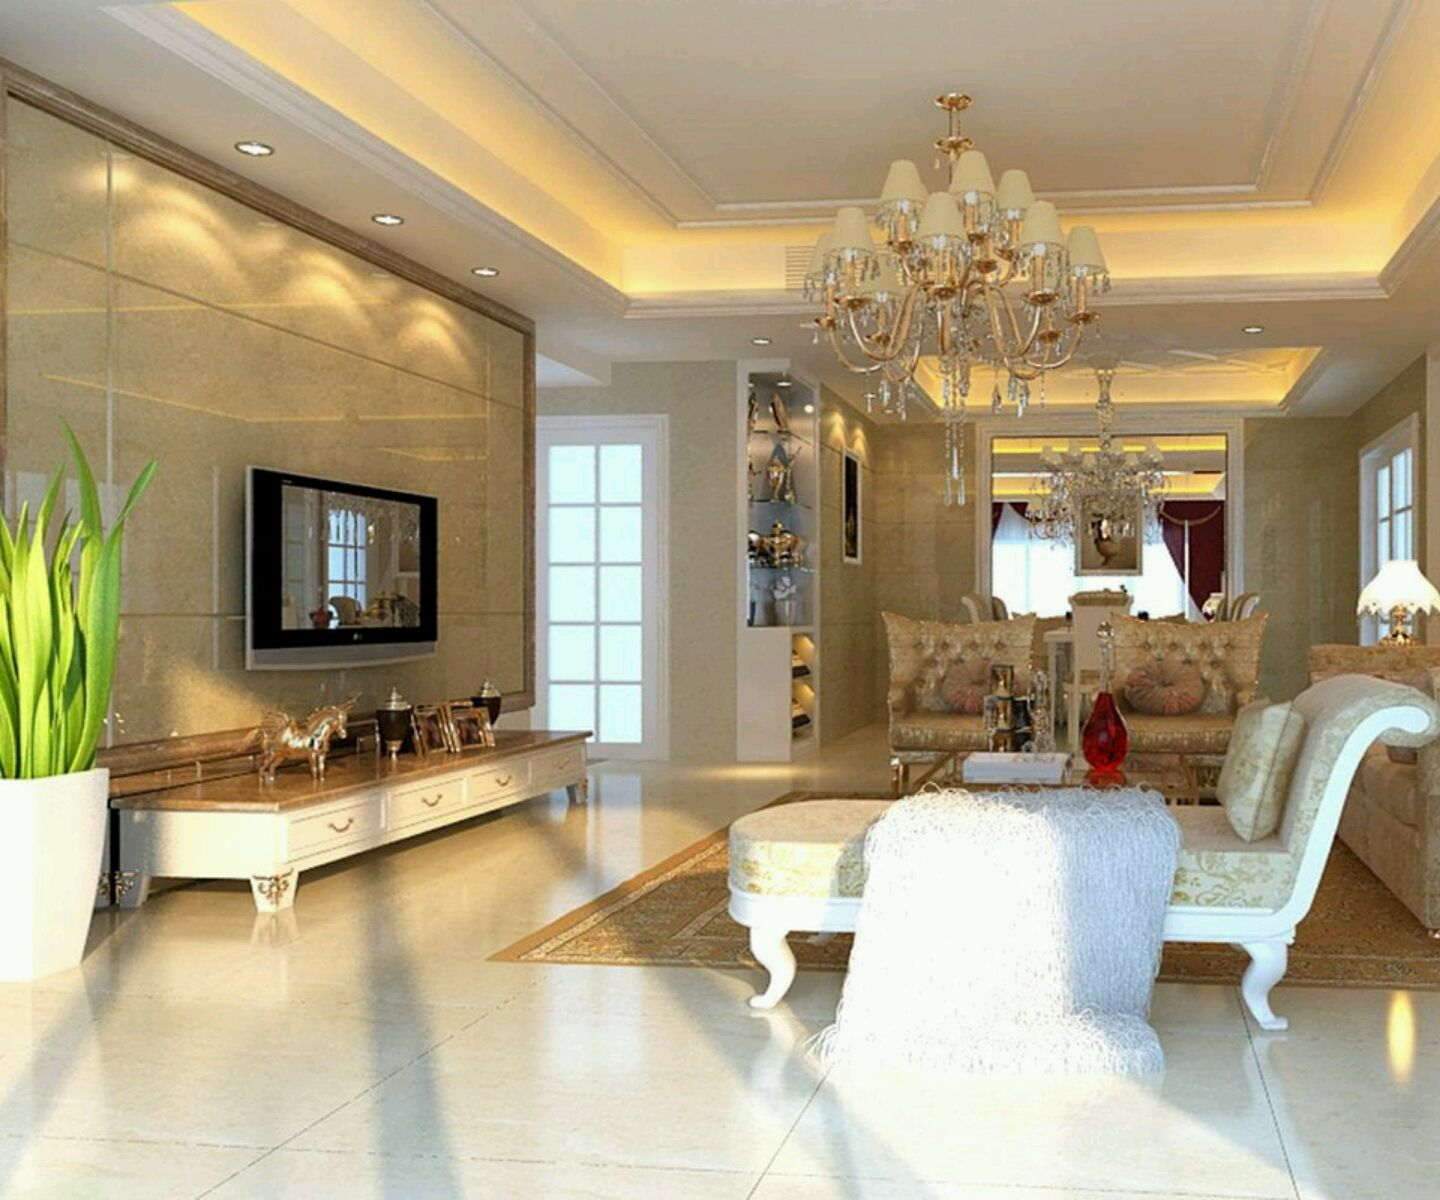 Inside Home Design: Luxury Homes Interior Decoration Living Room Designs Ideas